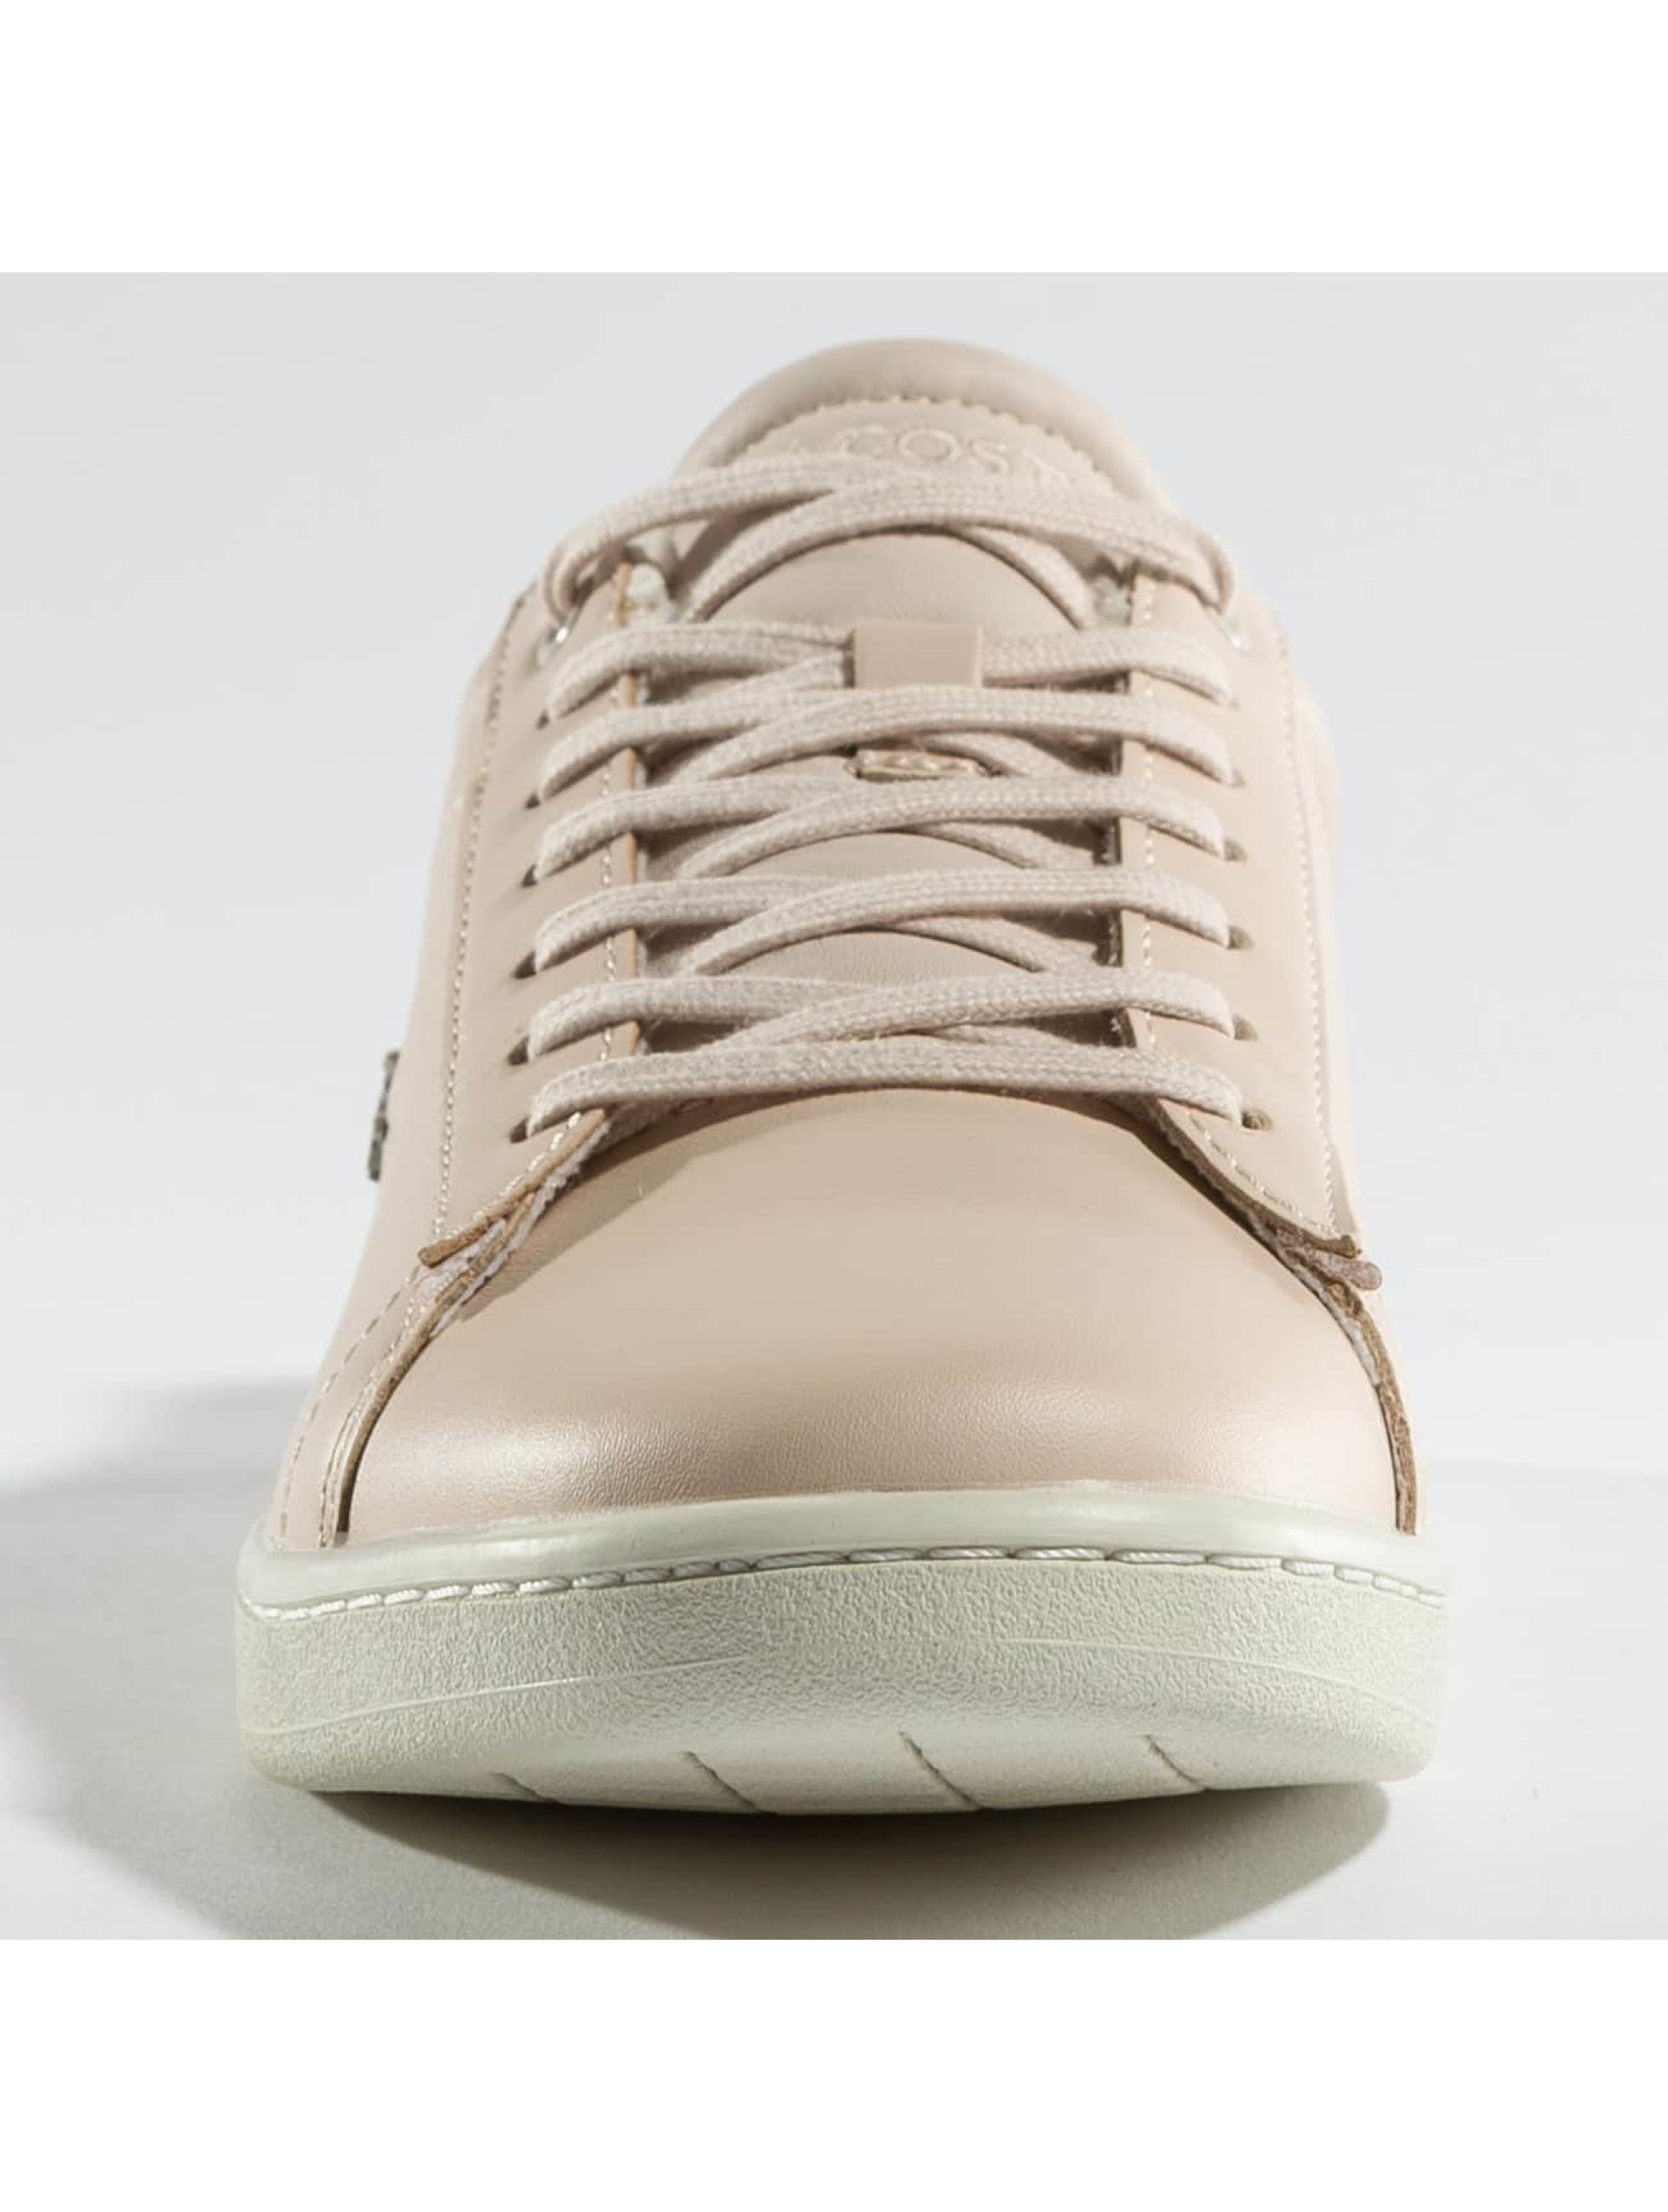 Lacoste homme chaussures baskets carnaby evo 417 1 spw - Lacoste carnaby evo cls baskets en cuir perfore ...